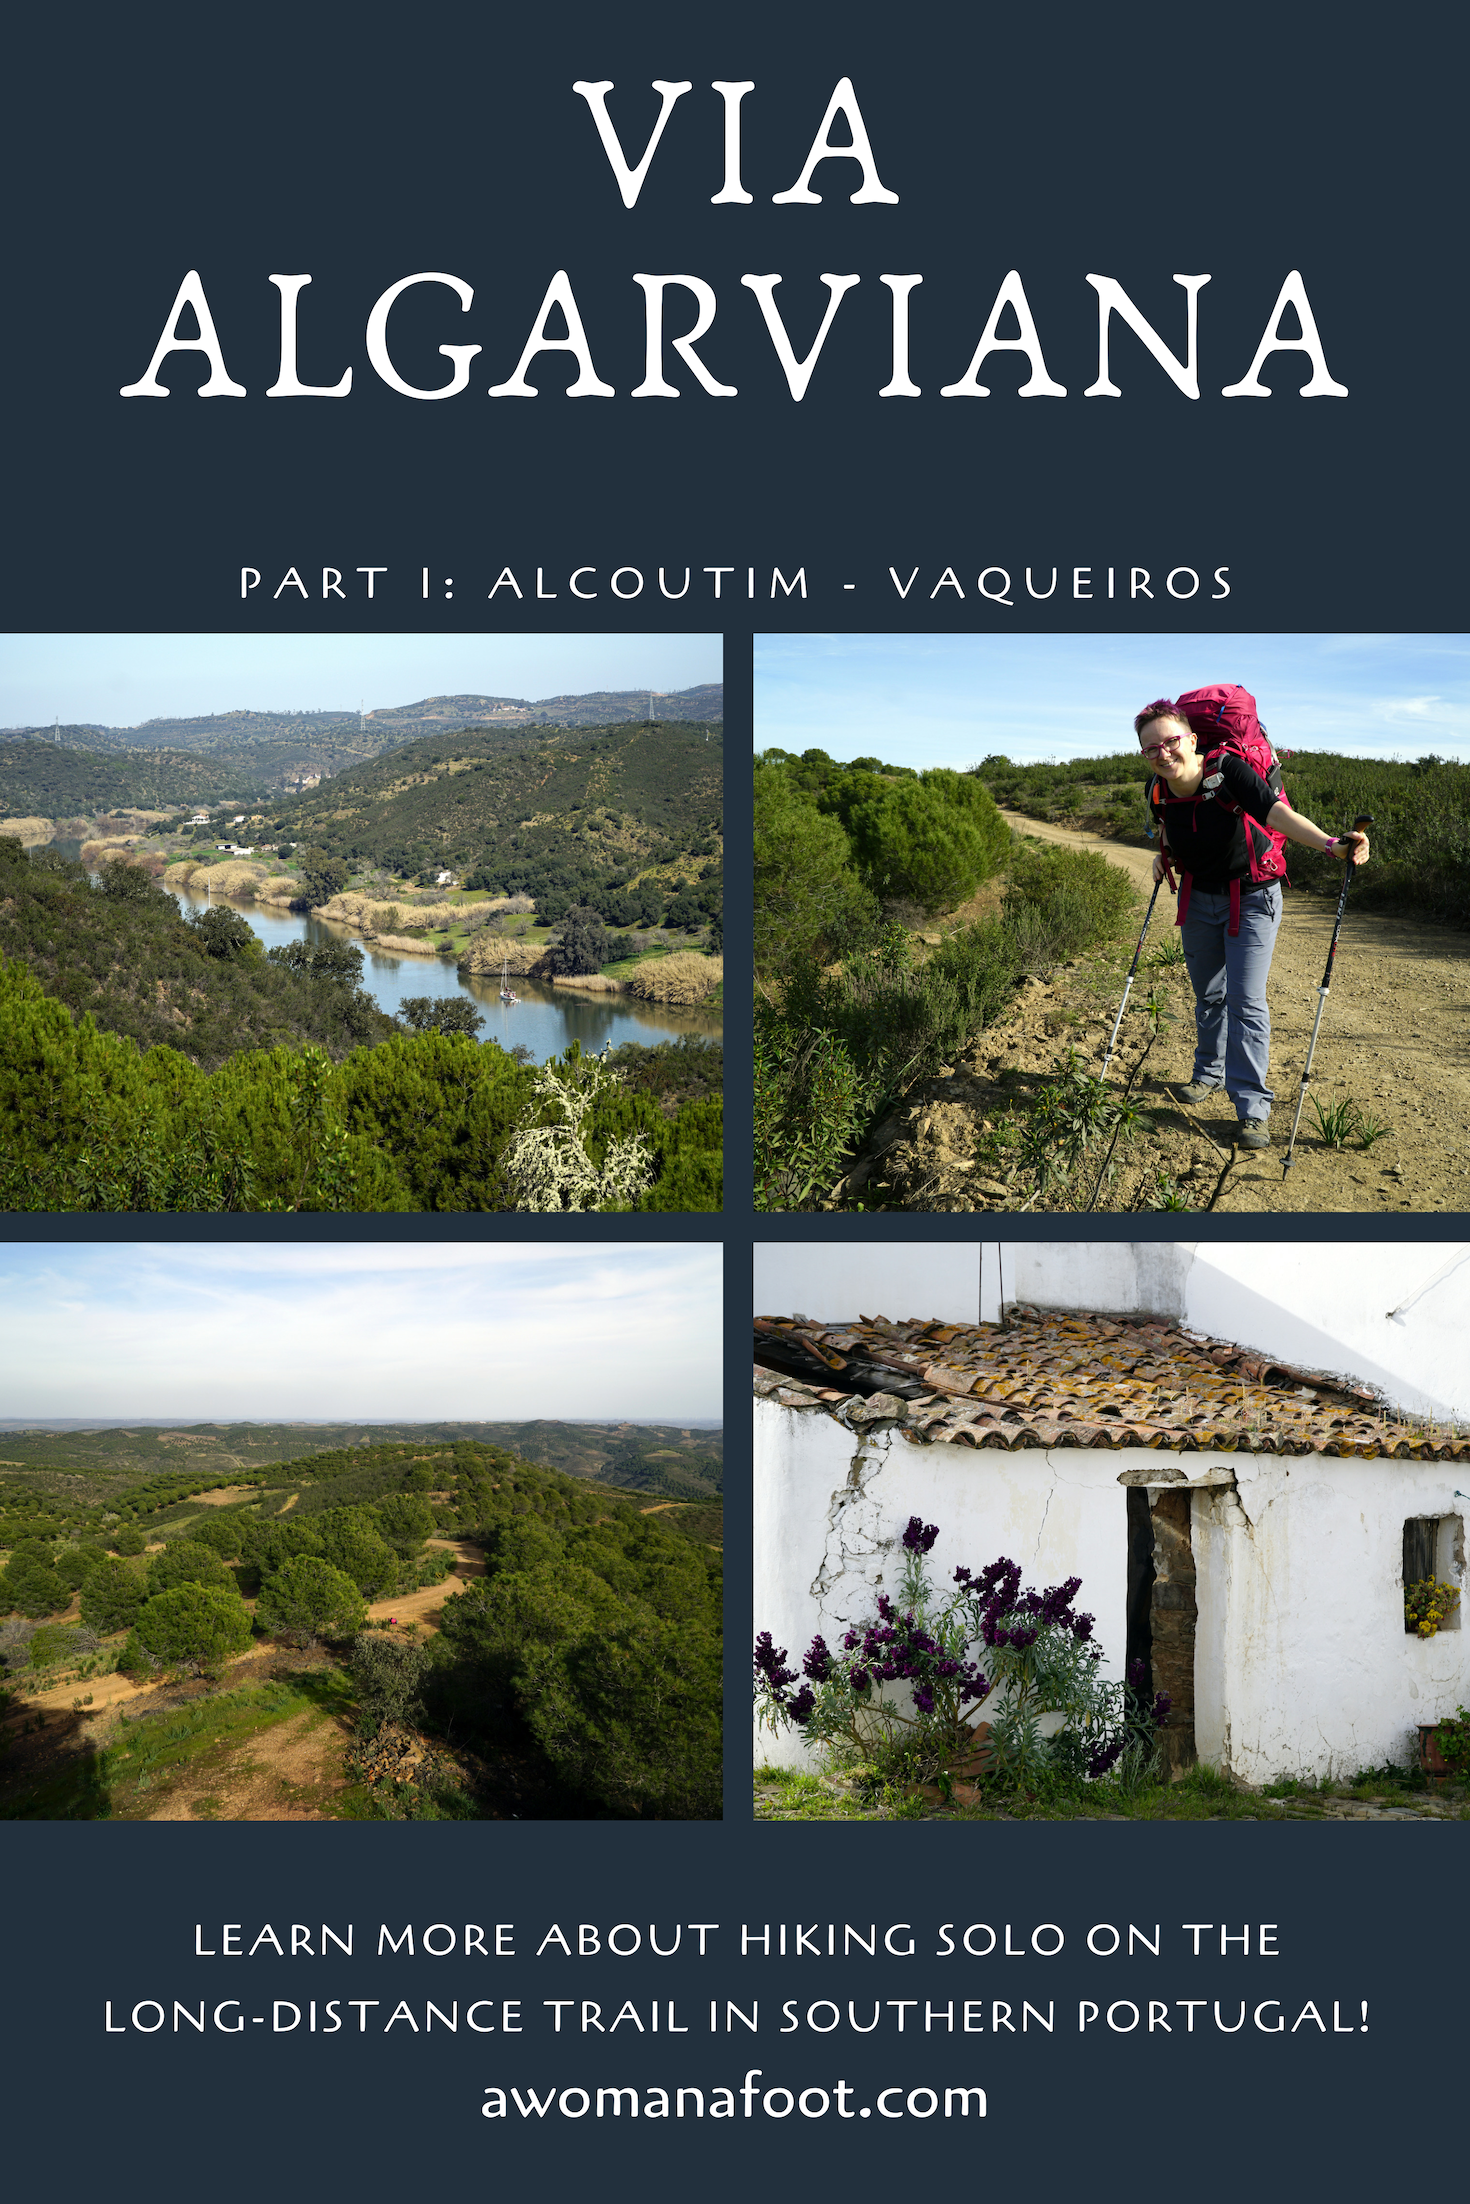 Hiking Solo the Via Algarviana in Portugal. 1st part: from Alcoutim to Vaqueiros. Click to learn about this beautiful destination - perfect for solo winter trek @awomanafoot.com. Winter destinations in Europe | Hiking in Europe | European hiking trails | Outdoor Portugal | What to do in Algarve, Portugal | Hiking trails for female solo hikers | #hiking #ViaAlgarviana #Portugal #FemaleSoloHiker #Outdoors #EuropeActiveTravel #Algarve